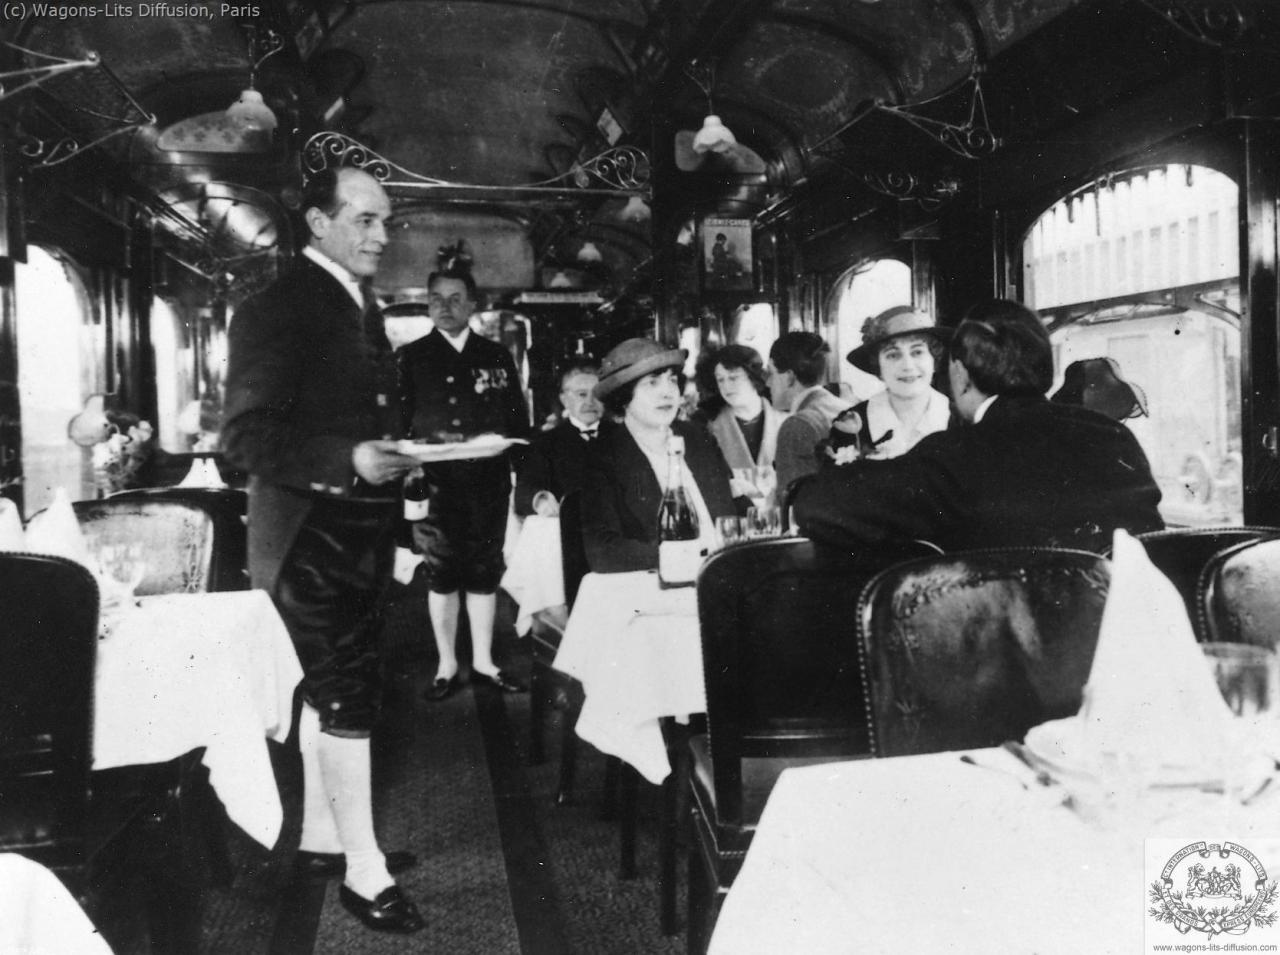 Inside the Restaurant car, CIWL archive, 1900 c.ca